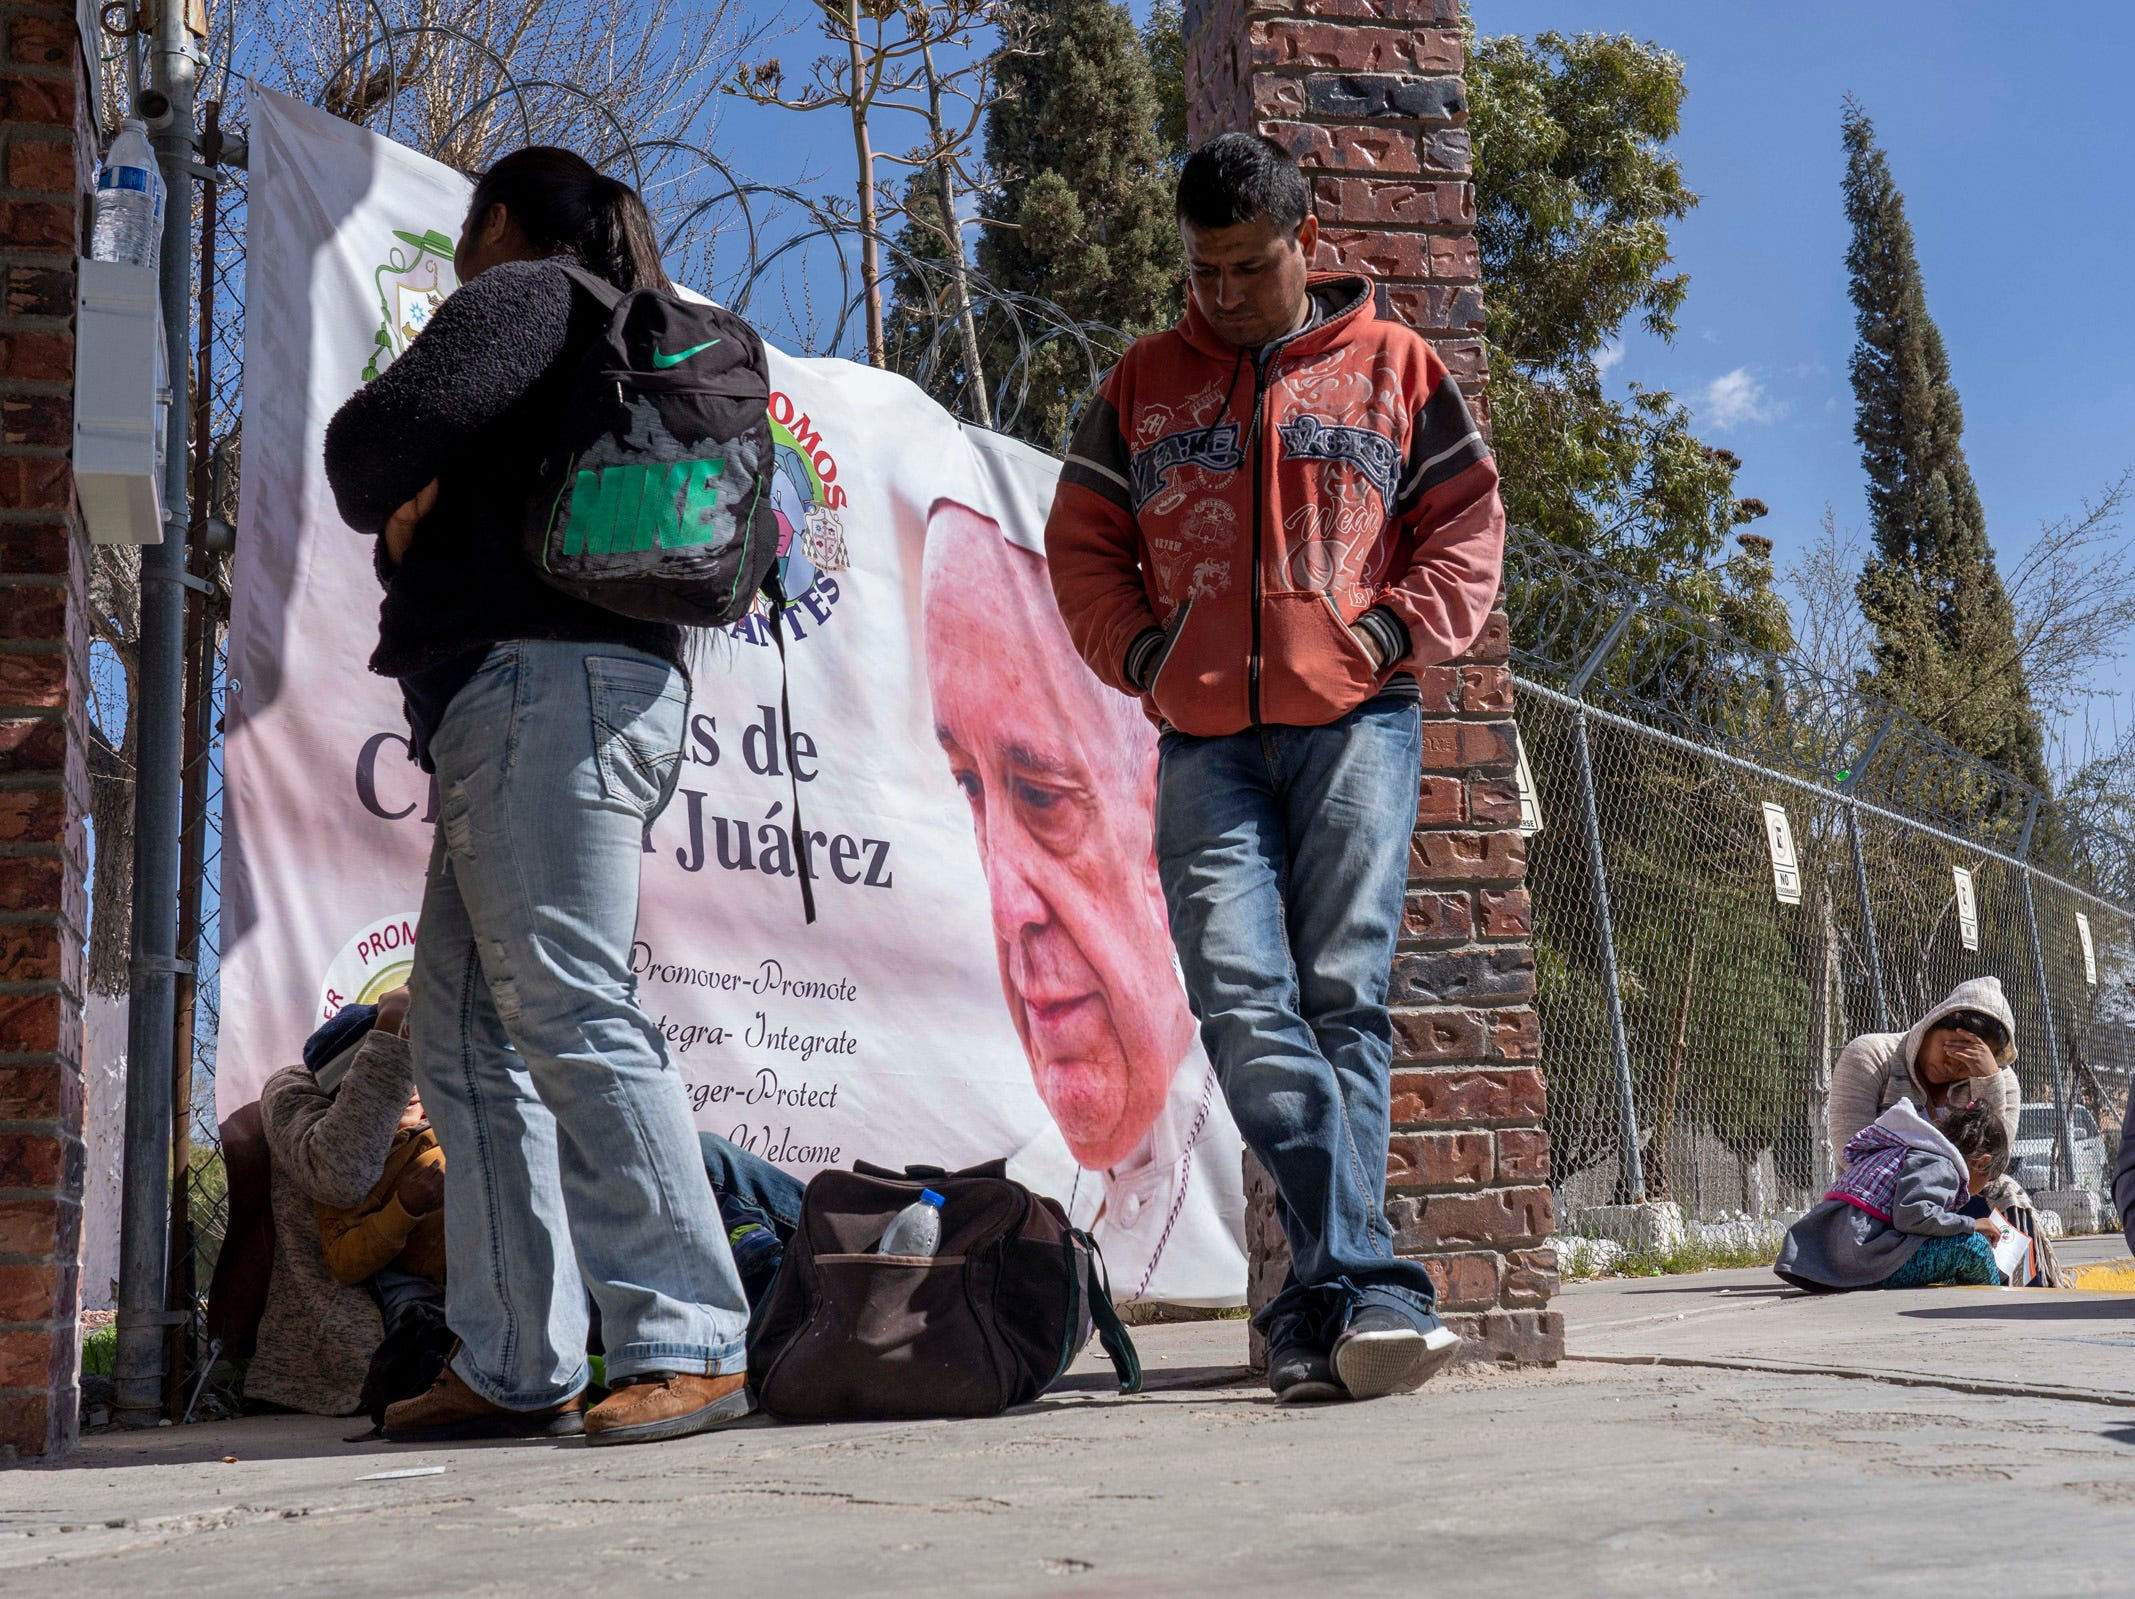 2/11/19 11:23:57 AM -- El Paso, TX, U.S.A  -- On Monday morning, dozen newly-arrived migrants from around Mexico and Latin America to the Casa del Migrante, the Catholic-run shelter for migrants located in Ciudad Juarez. 